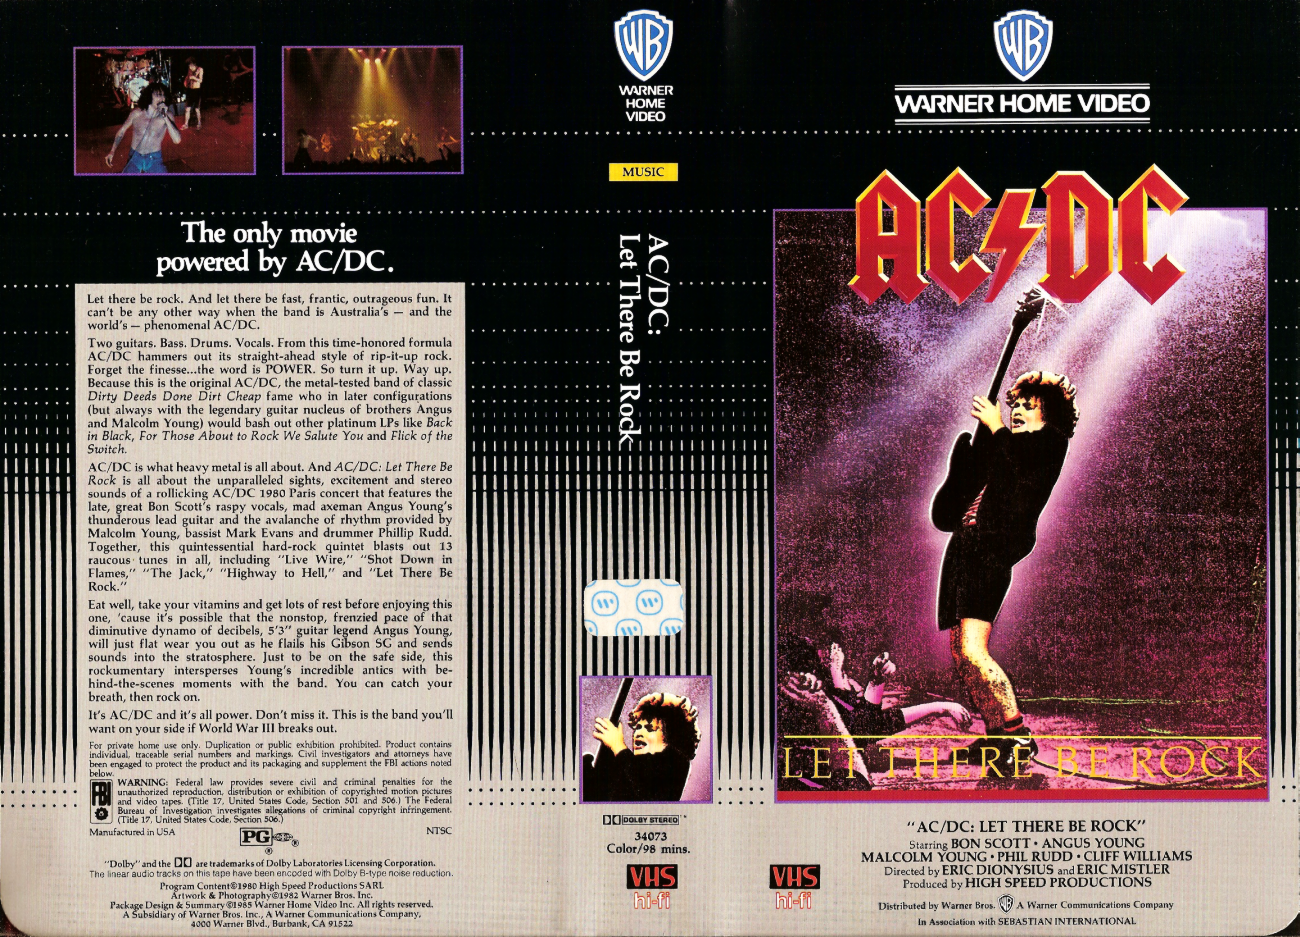 Basement Of Ghoulish Decadence Ac Dc Let There Be Rock 1980 1985 Warner Home Video Clamshell Vhs